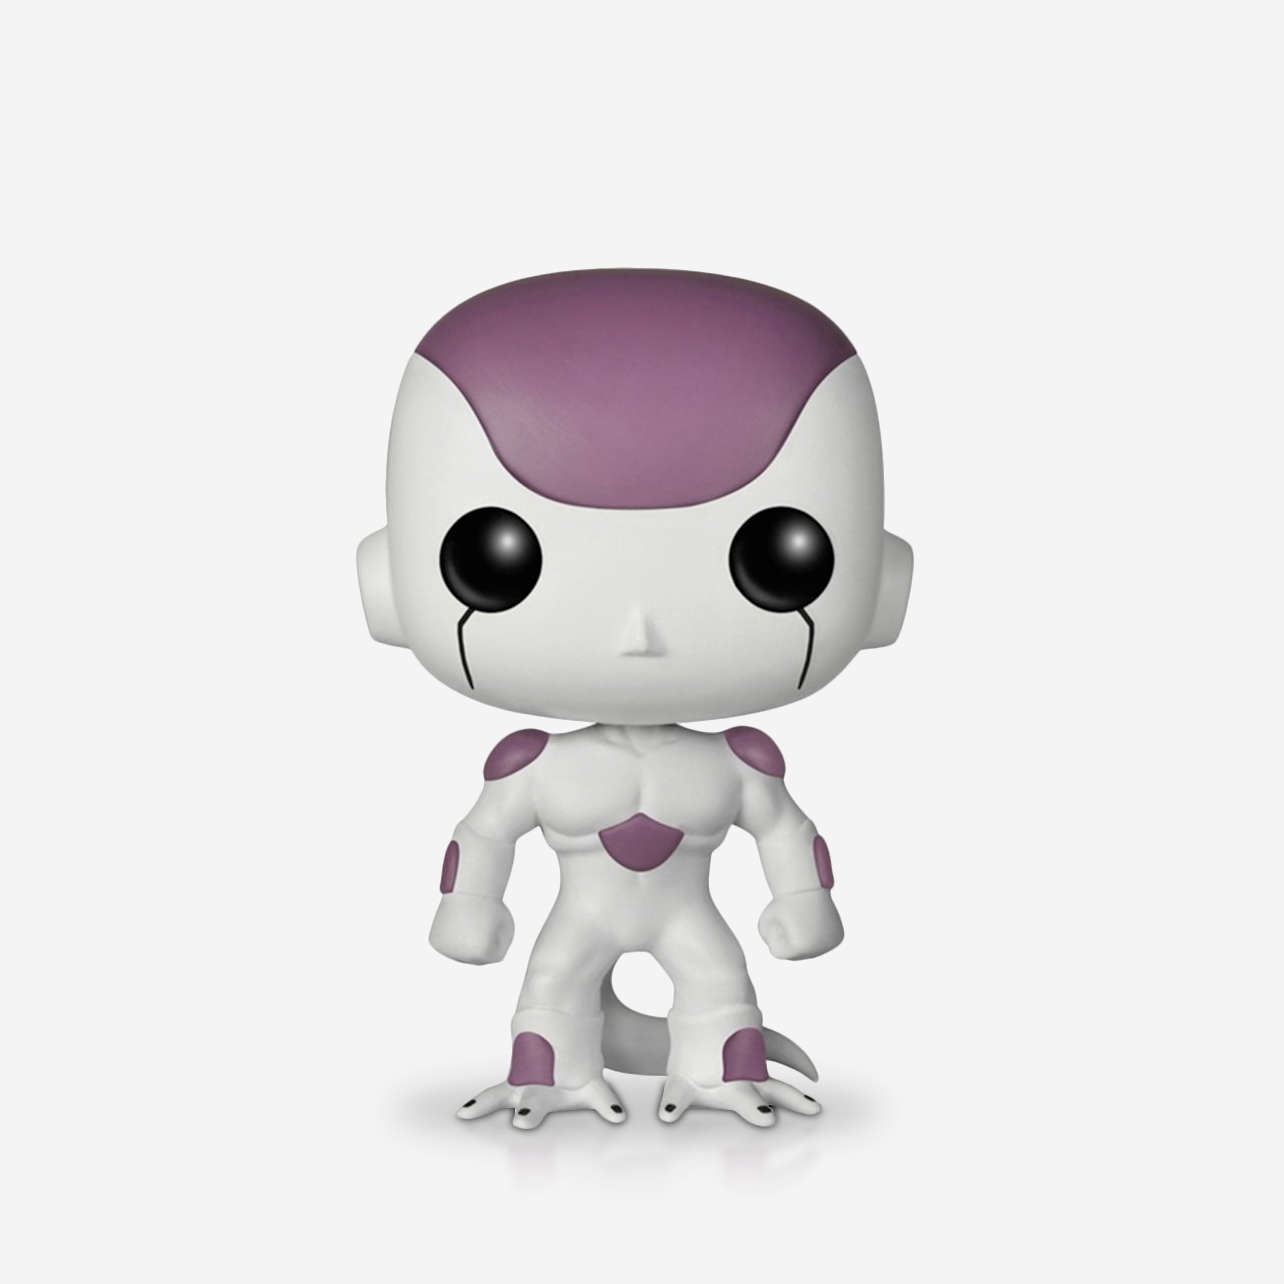 Funko Pop - Final Form Frieza Figures & Collectibles